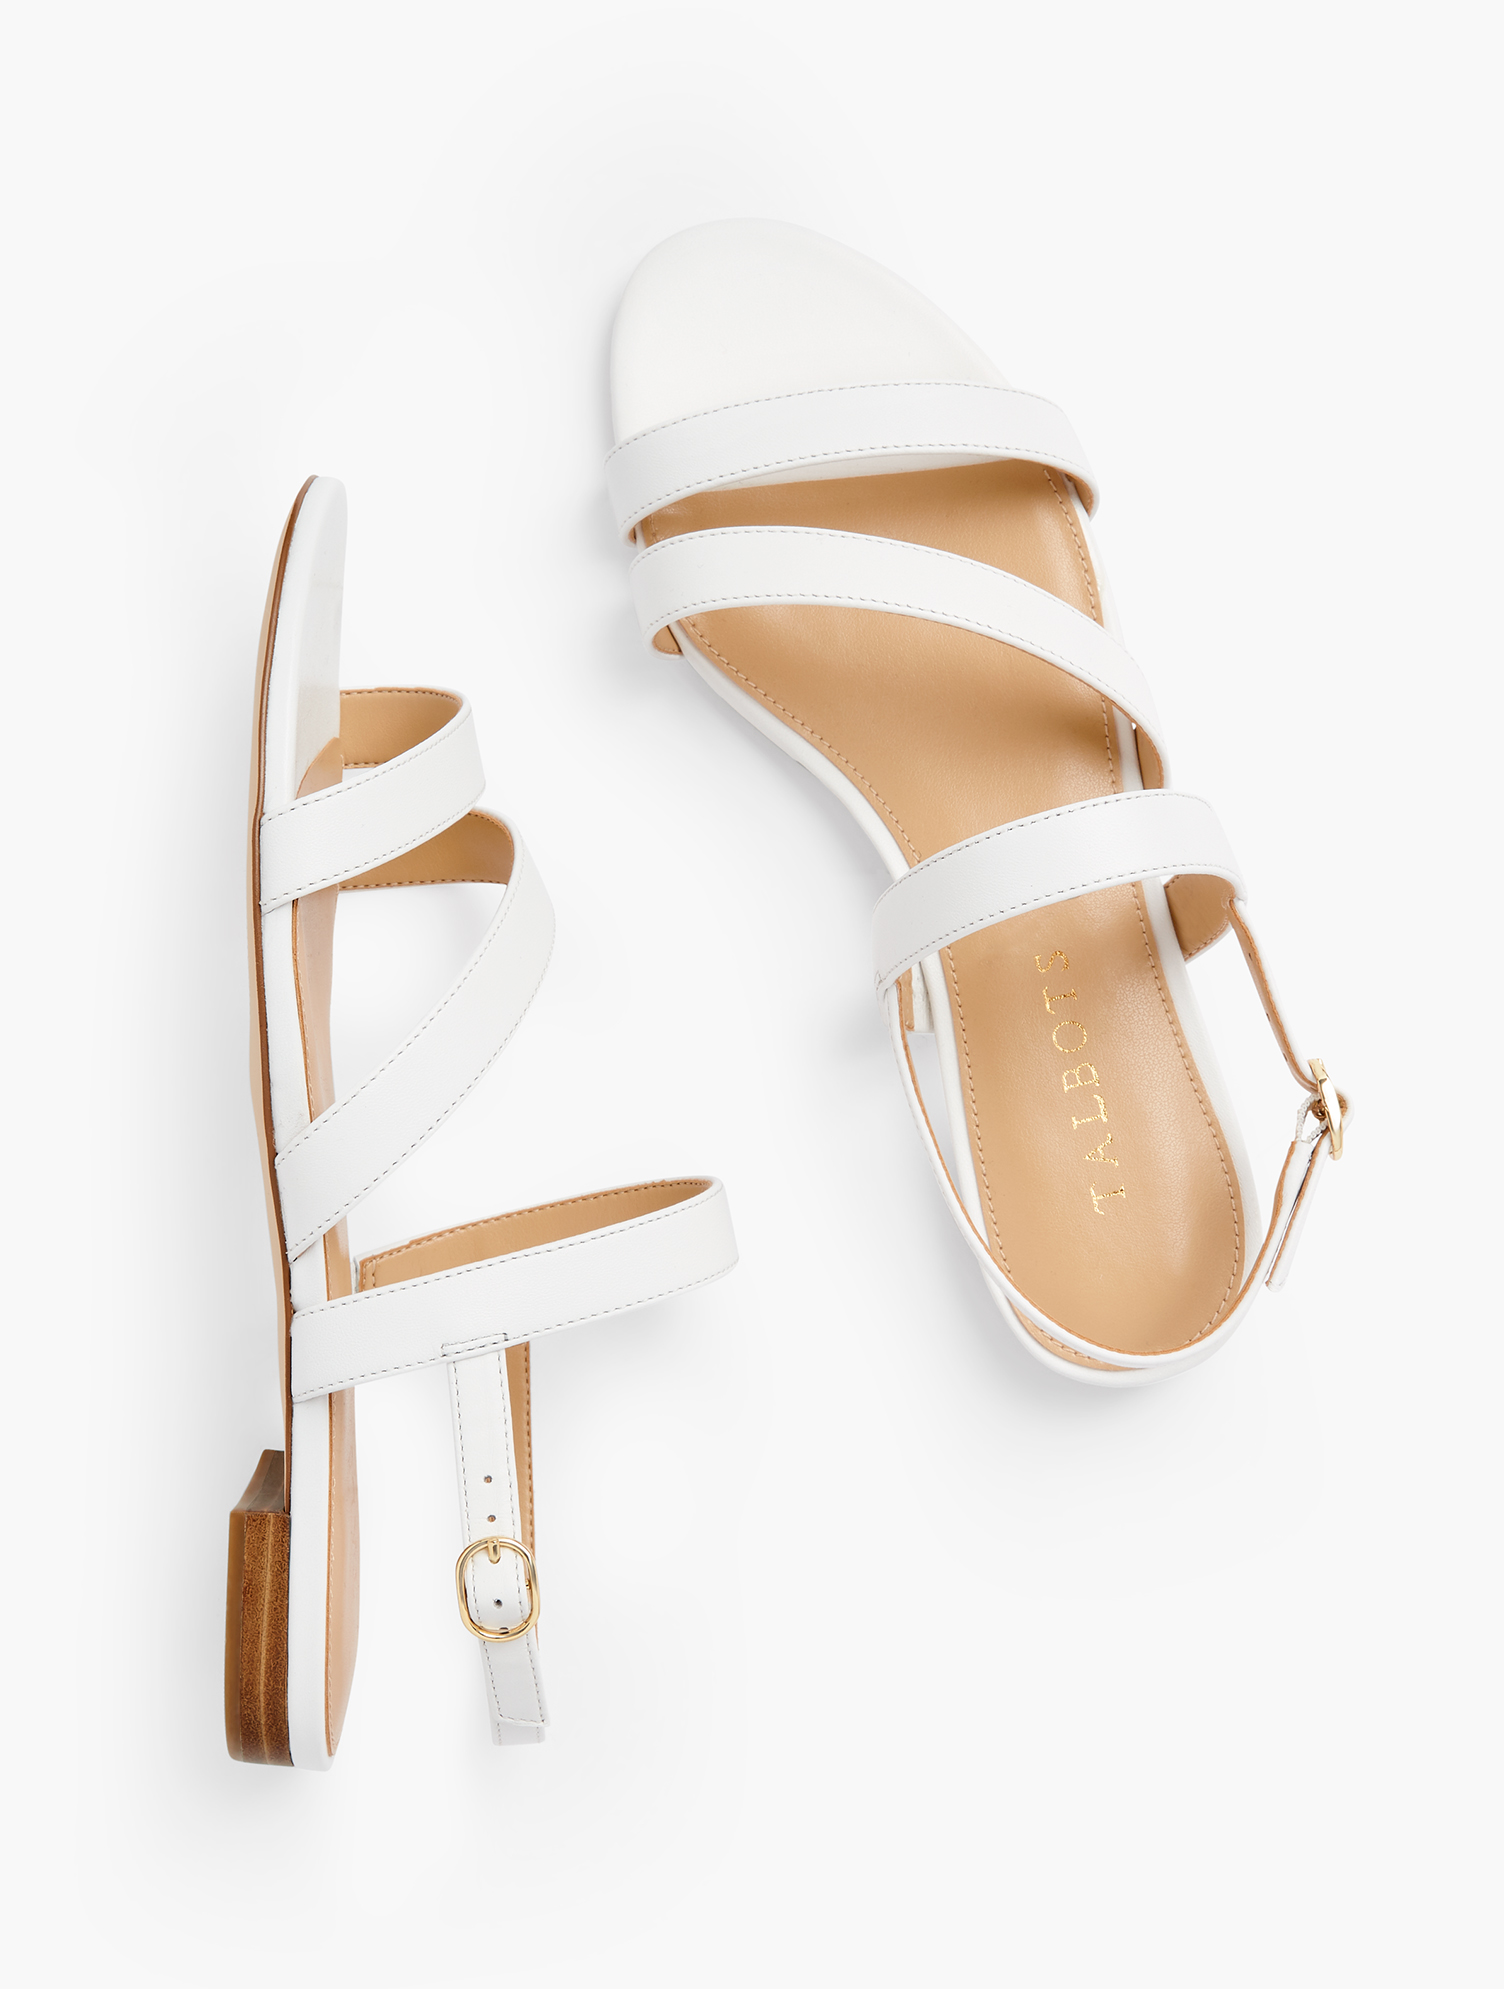 Easy elegance. Our Keri multi-strap sandals were made to be worn dressy or casual. Features Gift Box/Gift Wrap is not available for this item 1/2 inches heel Flexible Non Skid Outsole 9k Shiny Gold Hardware 3Mm Memory Foam Footbed Imported Material: 100% Leather Keri Multi Strap Sandals - Nappa - White - 9M Talbots